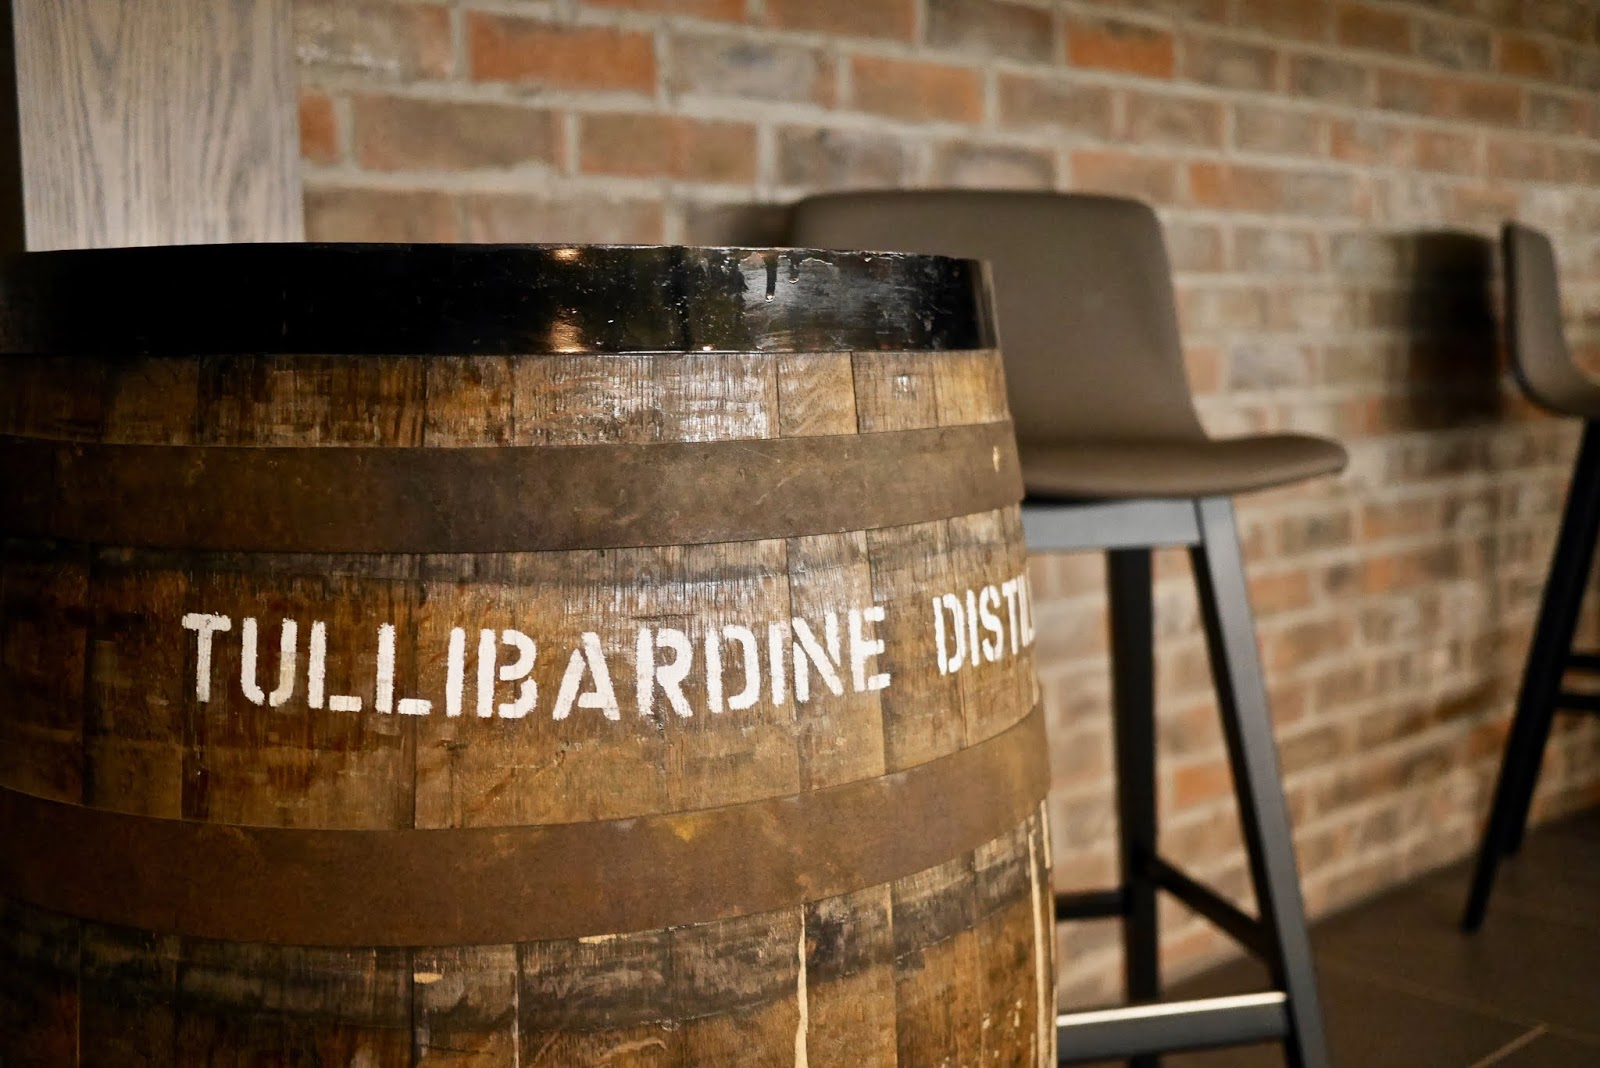 Tullibardine whisky distillery new tasting room by Cal McTravels at www.calmctravels.com